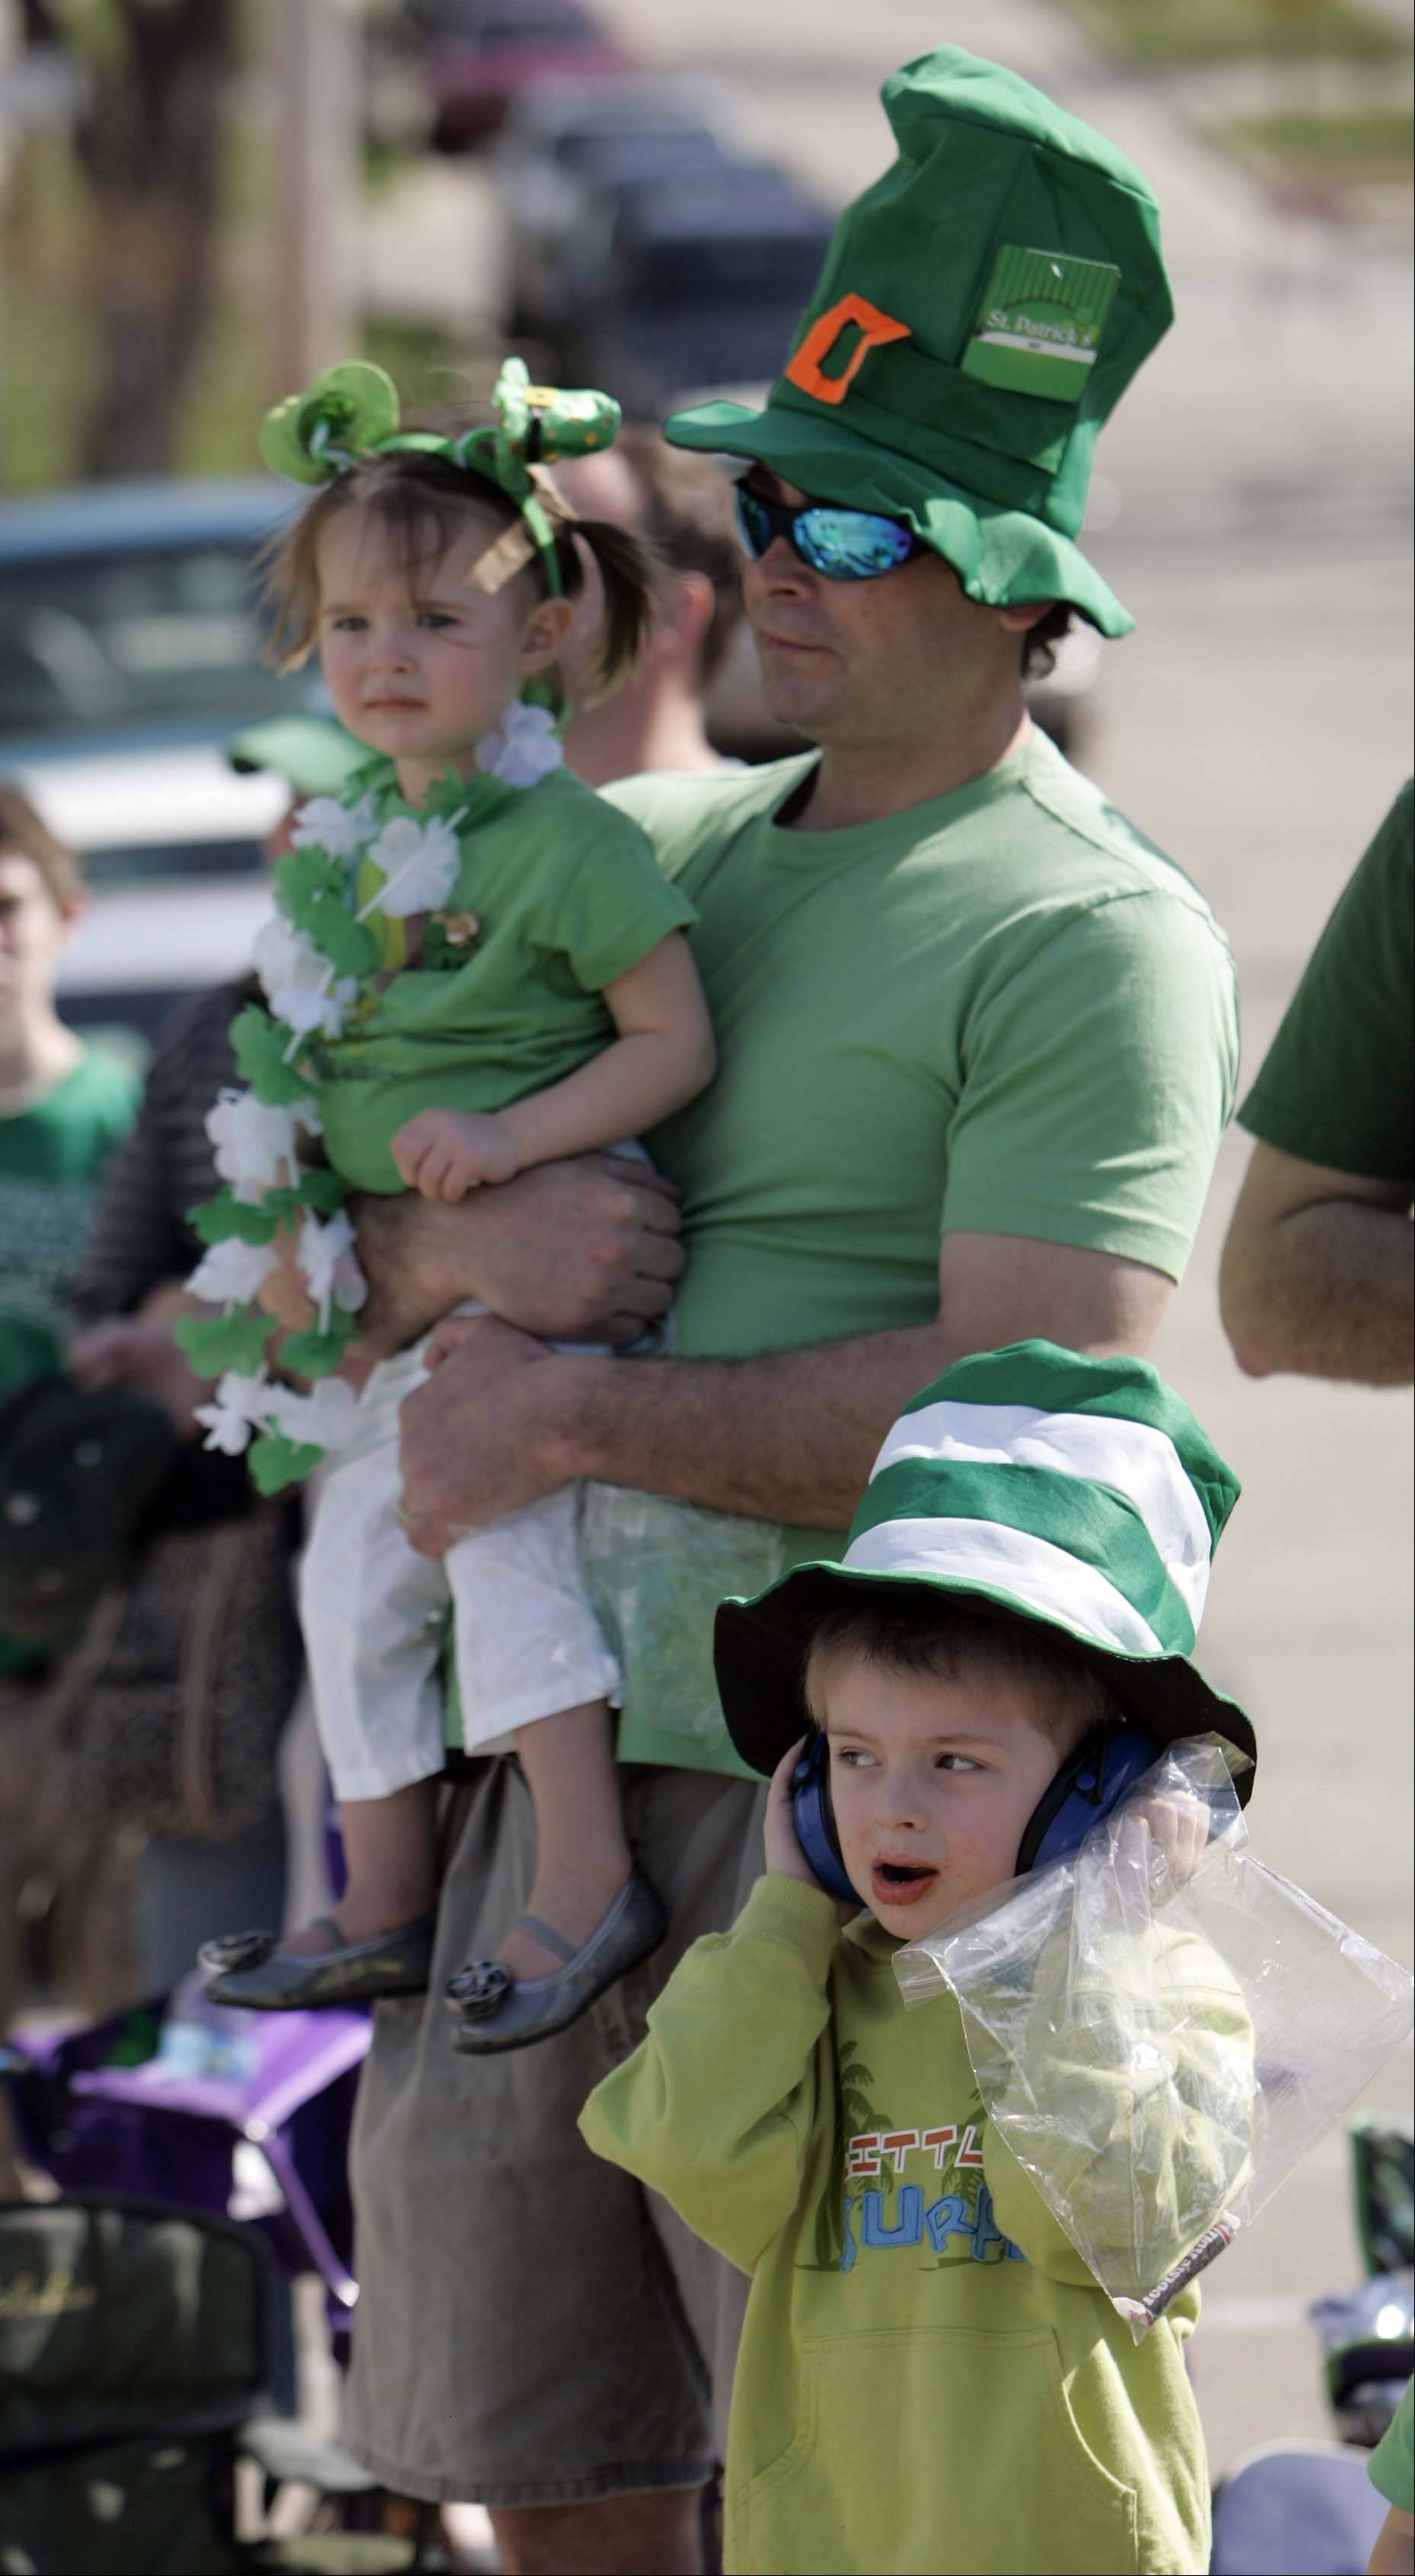 John Smith of Palatine holds his two-year-old daughter Grace while his son John Jr., 5, covers his ears as the Thom McNamee Memorial St. Patrick's Day Parade makes it way thru East Dundee March 17, 2012.